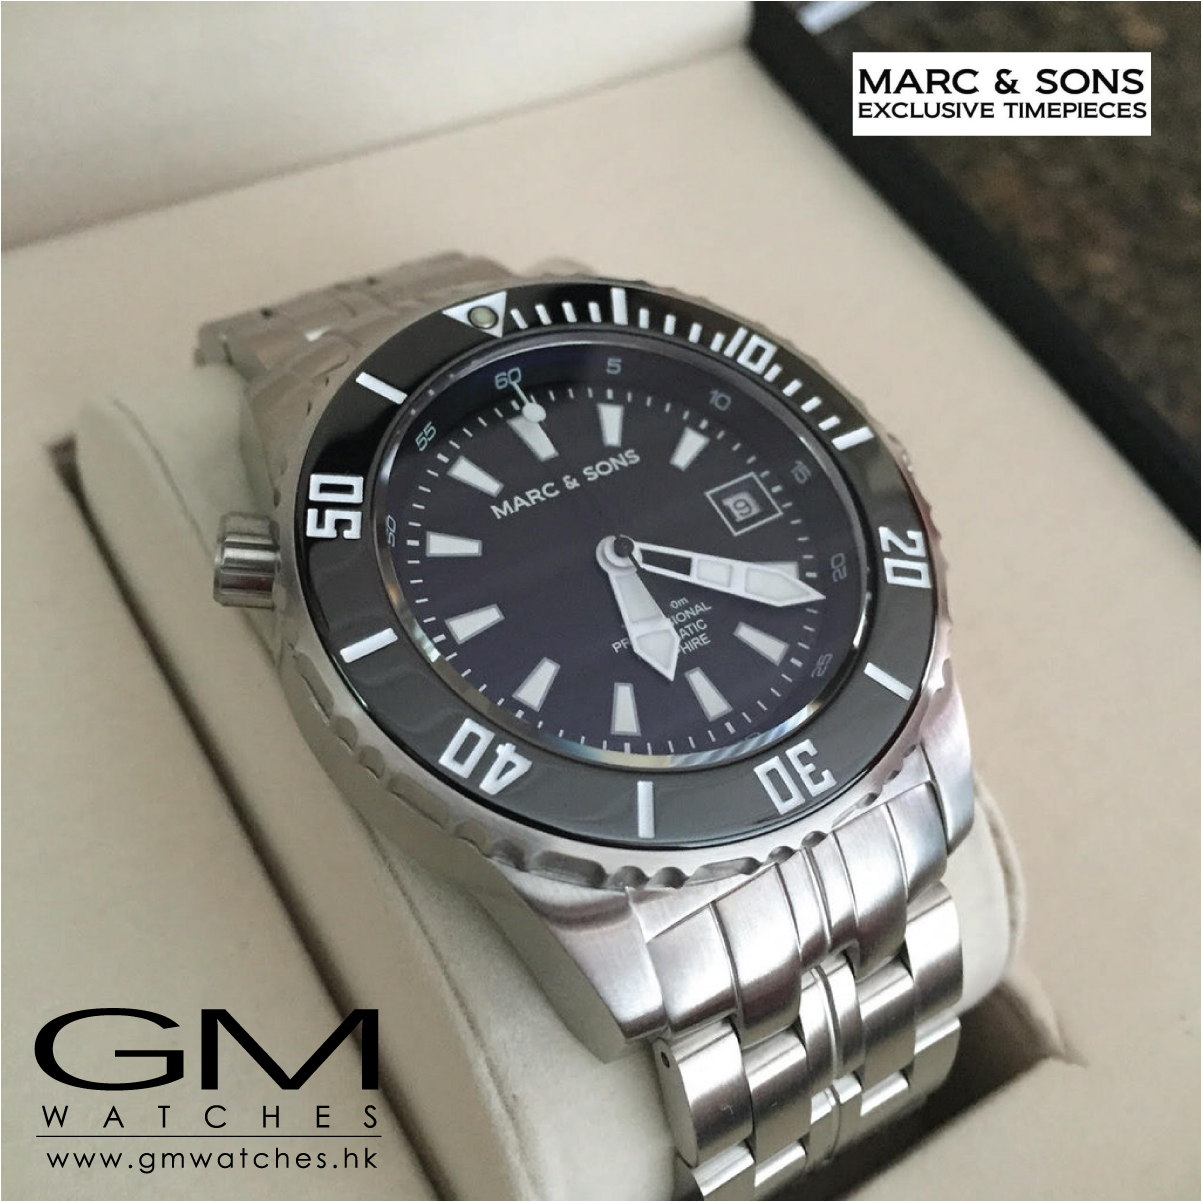 Marc Amp Sons Sport Diver Watch Msd 037 Gm Watches Hk